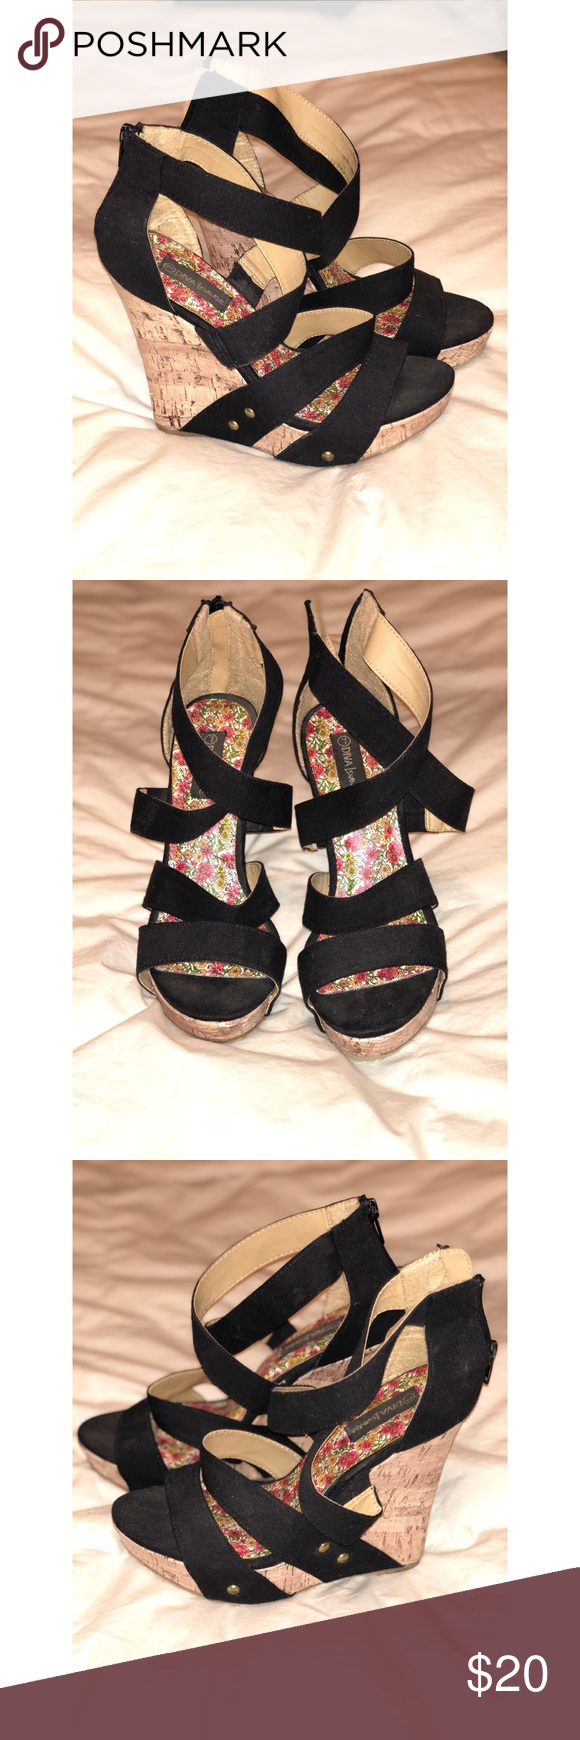 """Diva Lounge Wedges Diva Lounge cork wedges. Size 7 but fit like a 7 1/2. Has a 4"""" heel. Zips up the back. Good condition. diva lounge Shoes Wedges"""